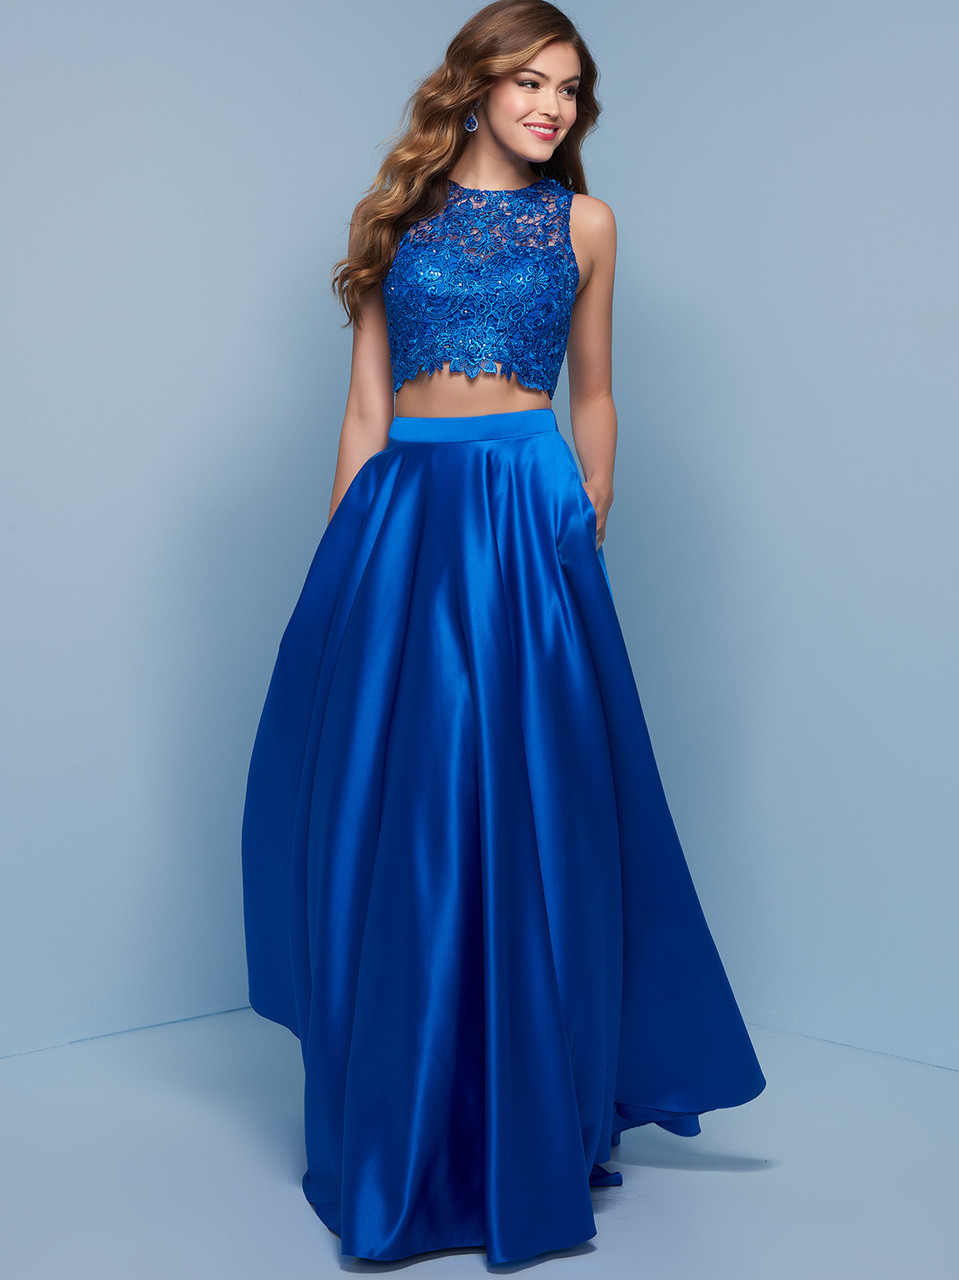 Old Fashioned Electric Blue Prom Dress Crest - All Wedding Dresses ...